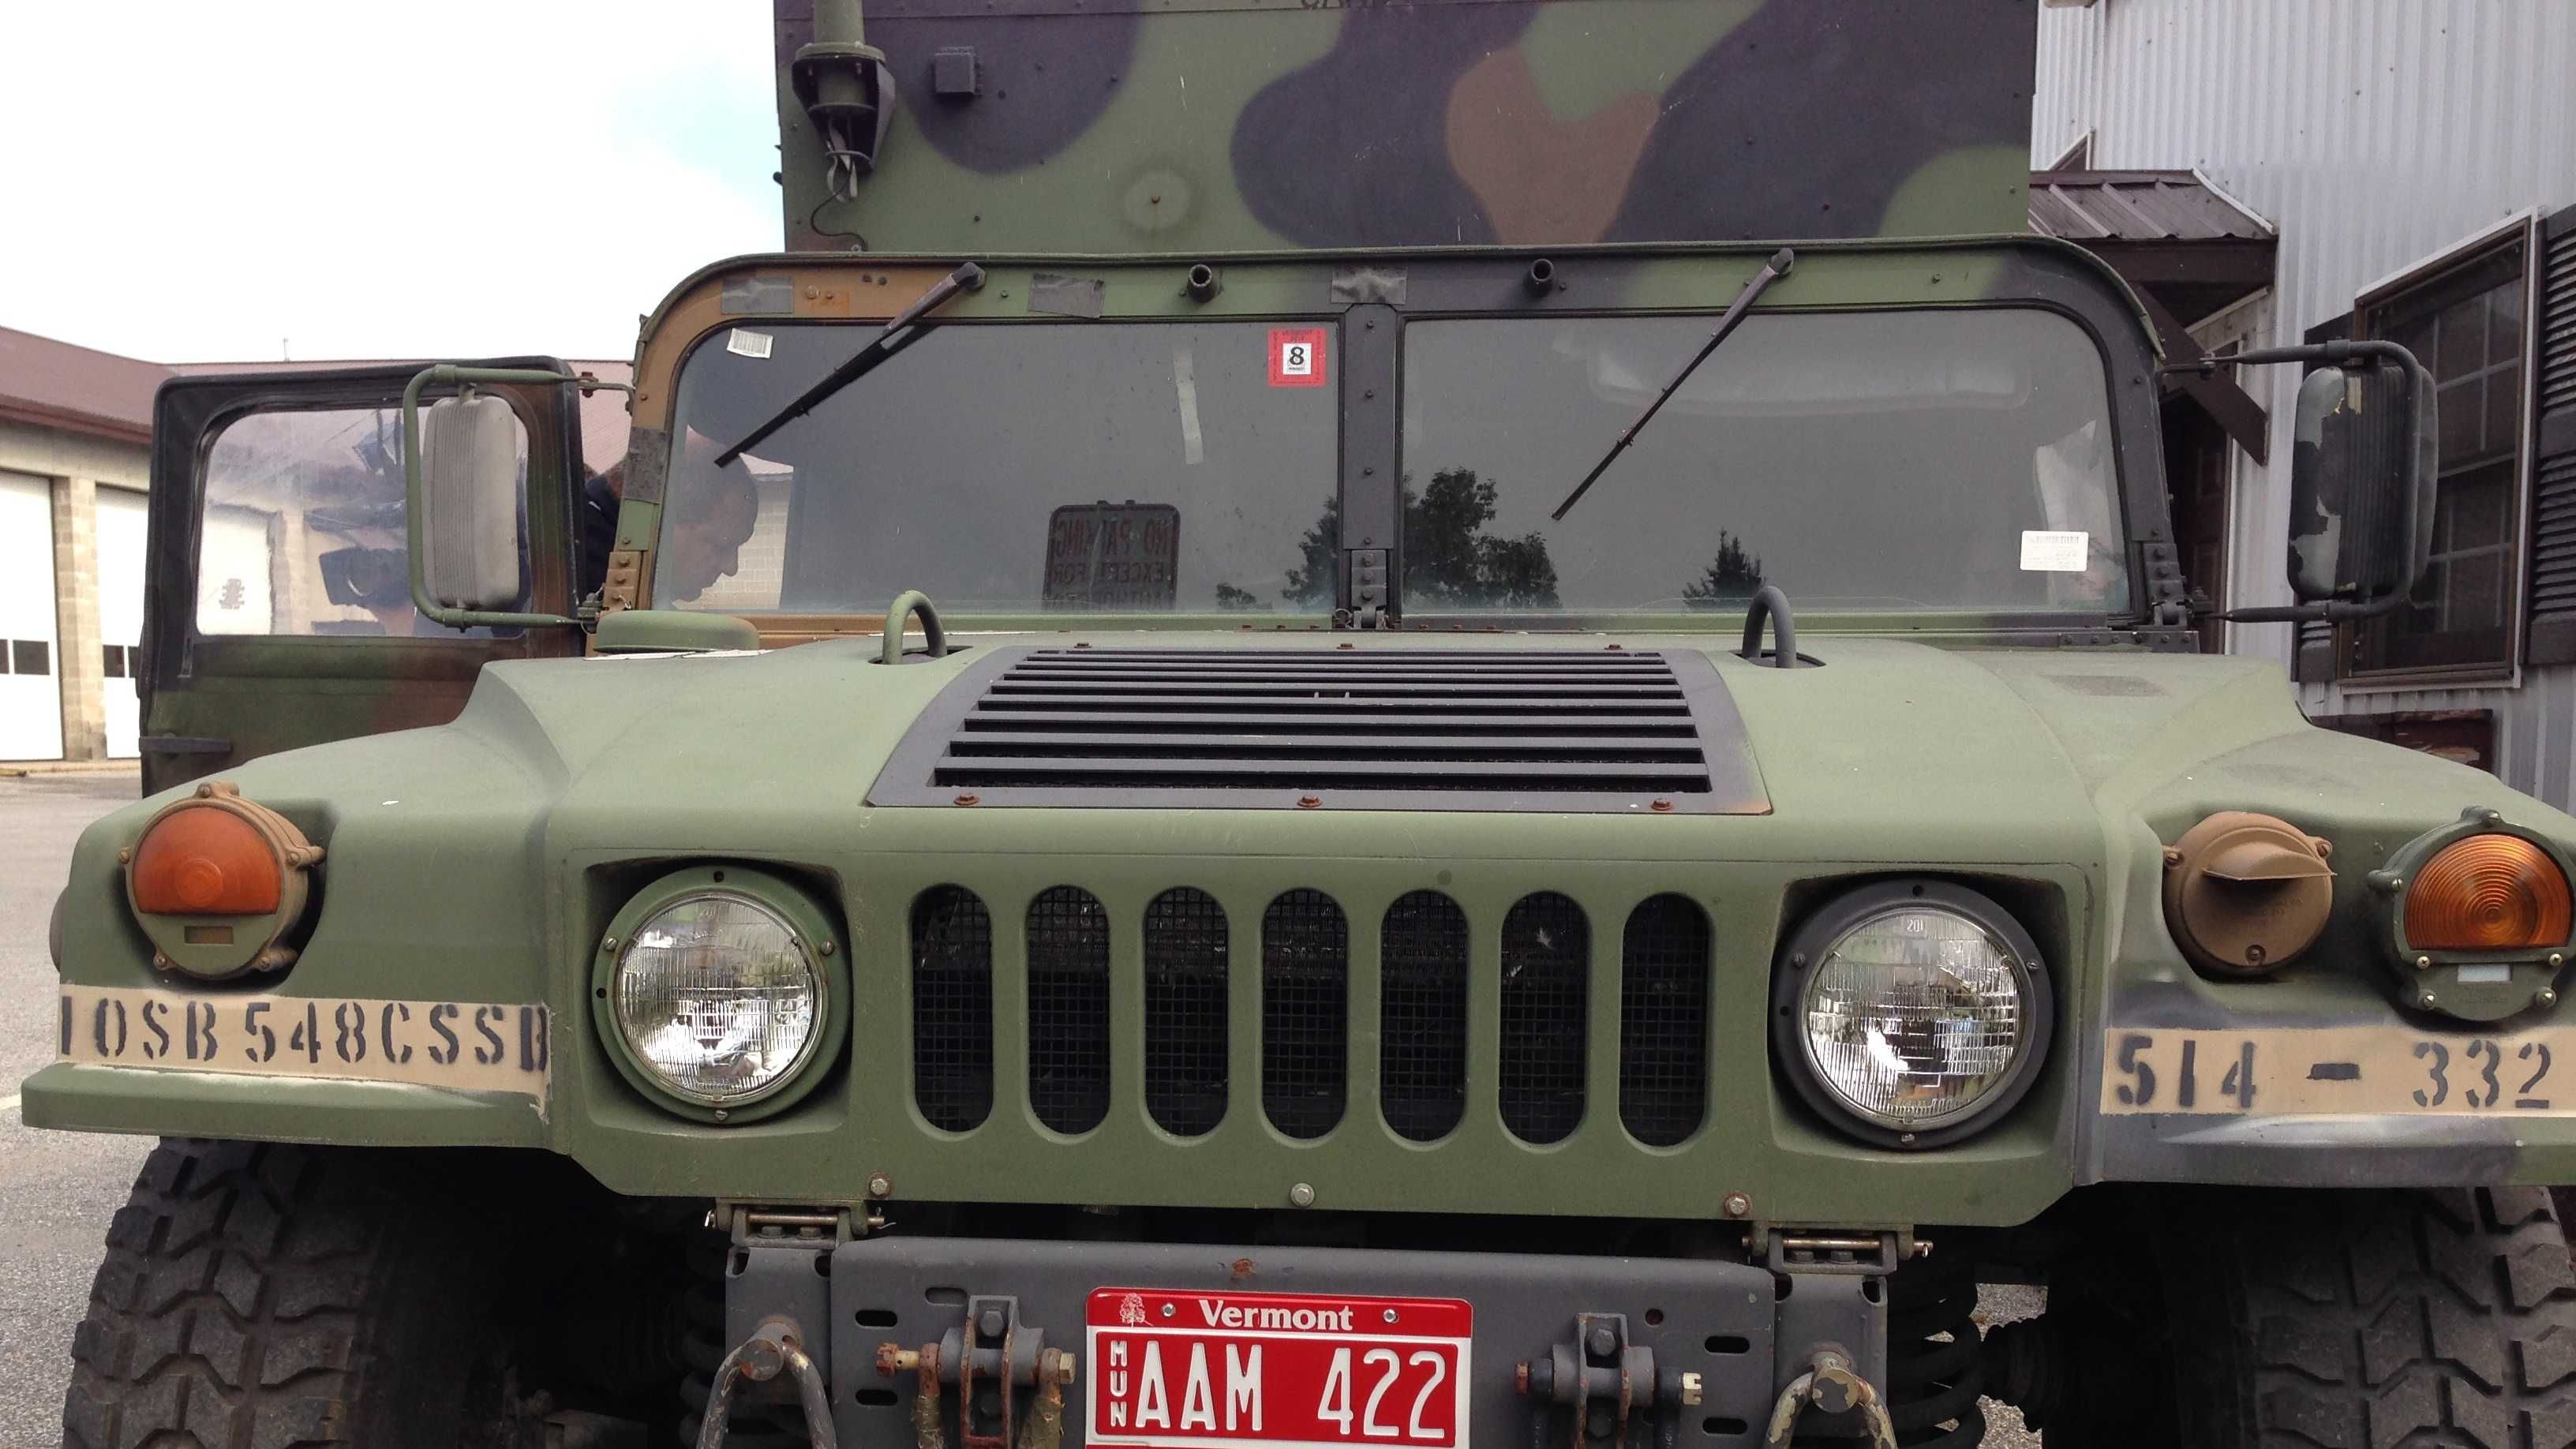 One of two military Humvee trucks the village of Swanton secured through the Pentagon's 1033 program.